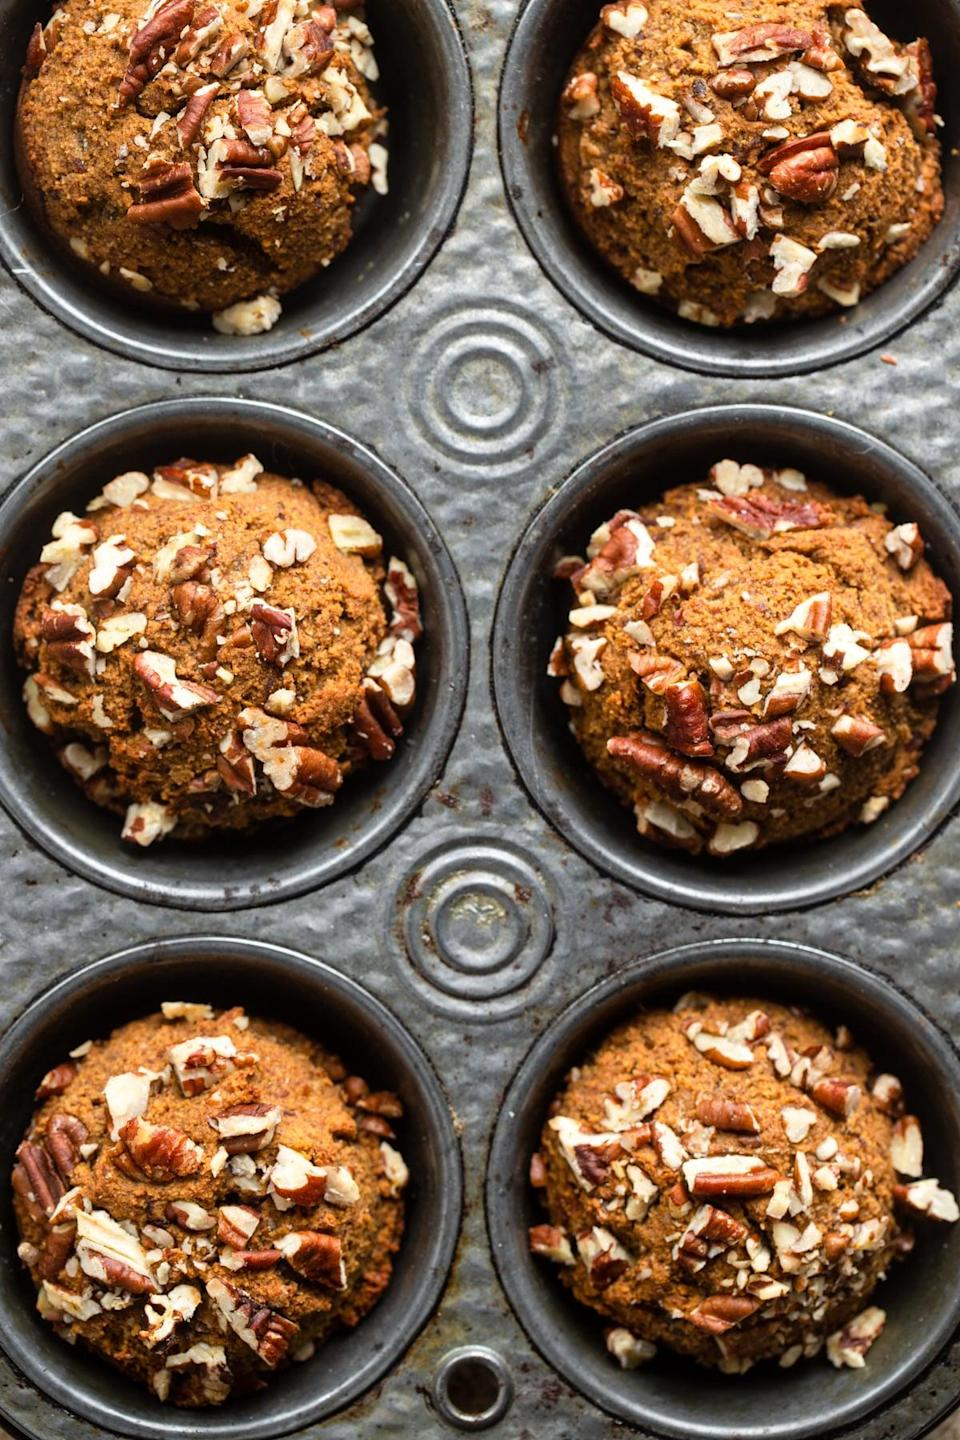 "<p>With wholesome ingredients, these tasty pumpkin muffins offer the perfect balance between spicy (thanks to the pumpkin-pie spice) and sweet. They're moist, tender, and easy to nosh on! If you're feeding two people, we suggest making about four muffins just so you have some to enjoy the next day.</p> <p><strong>Get the recipe</strong>: <a href=""https://www.foodfaithfitness.com/whole30-pumpkin-muffins/?utm_source=feedburner&utm_medium=feed&utm_campaign=Feed%3A+foodfaithfitness%2FryFv+%28Food+Faith+Fitness%29"" class=""link rapid-noclick-resp"" rel=""nofollow noopener"" target=""_blank"" data-ylk=""slk:Whole30 pumpkin muffins"">Whole30 pumpkin muffins</a></p>"